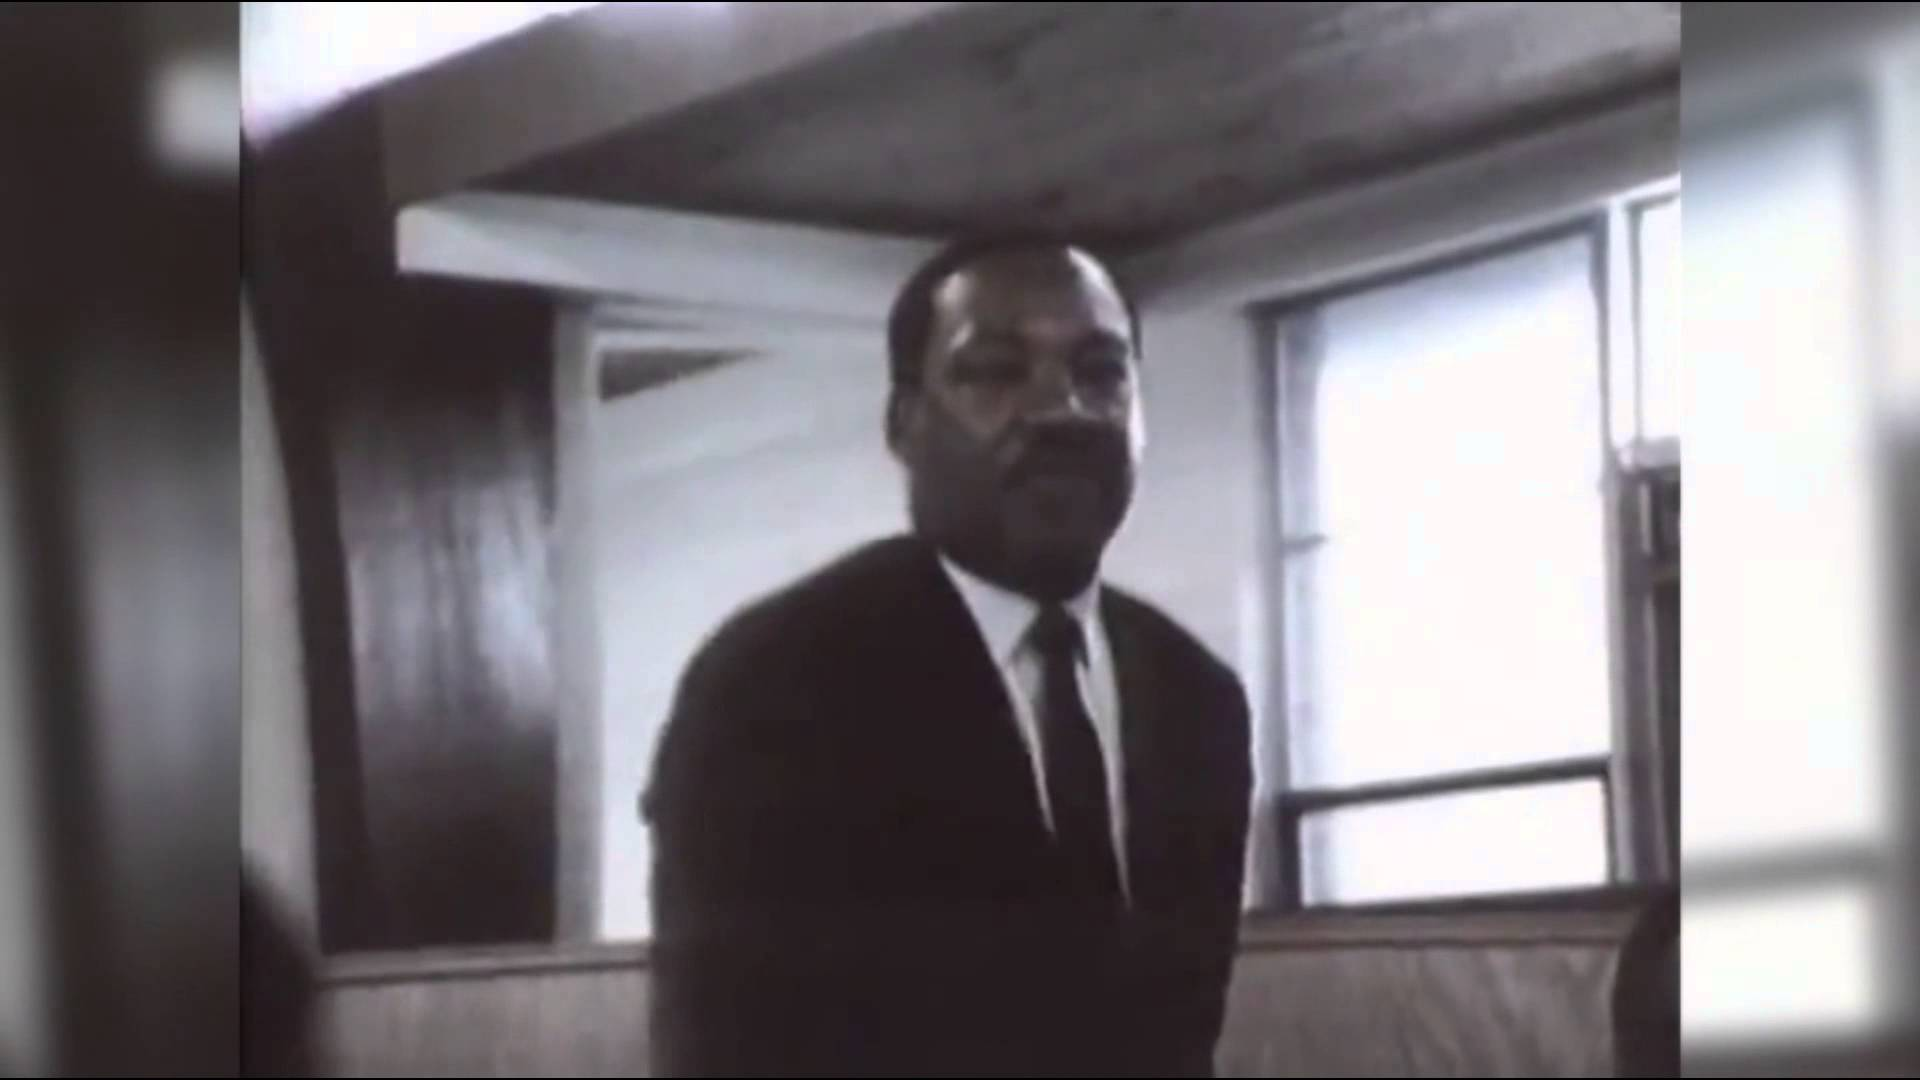 Dr. King's Bold Case for Economic Equality